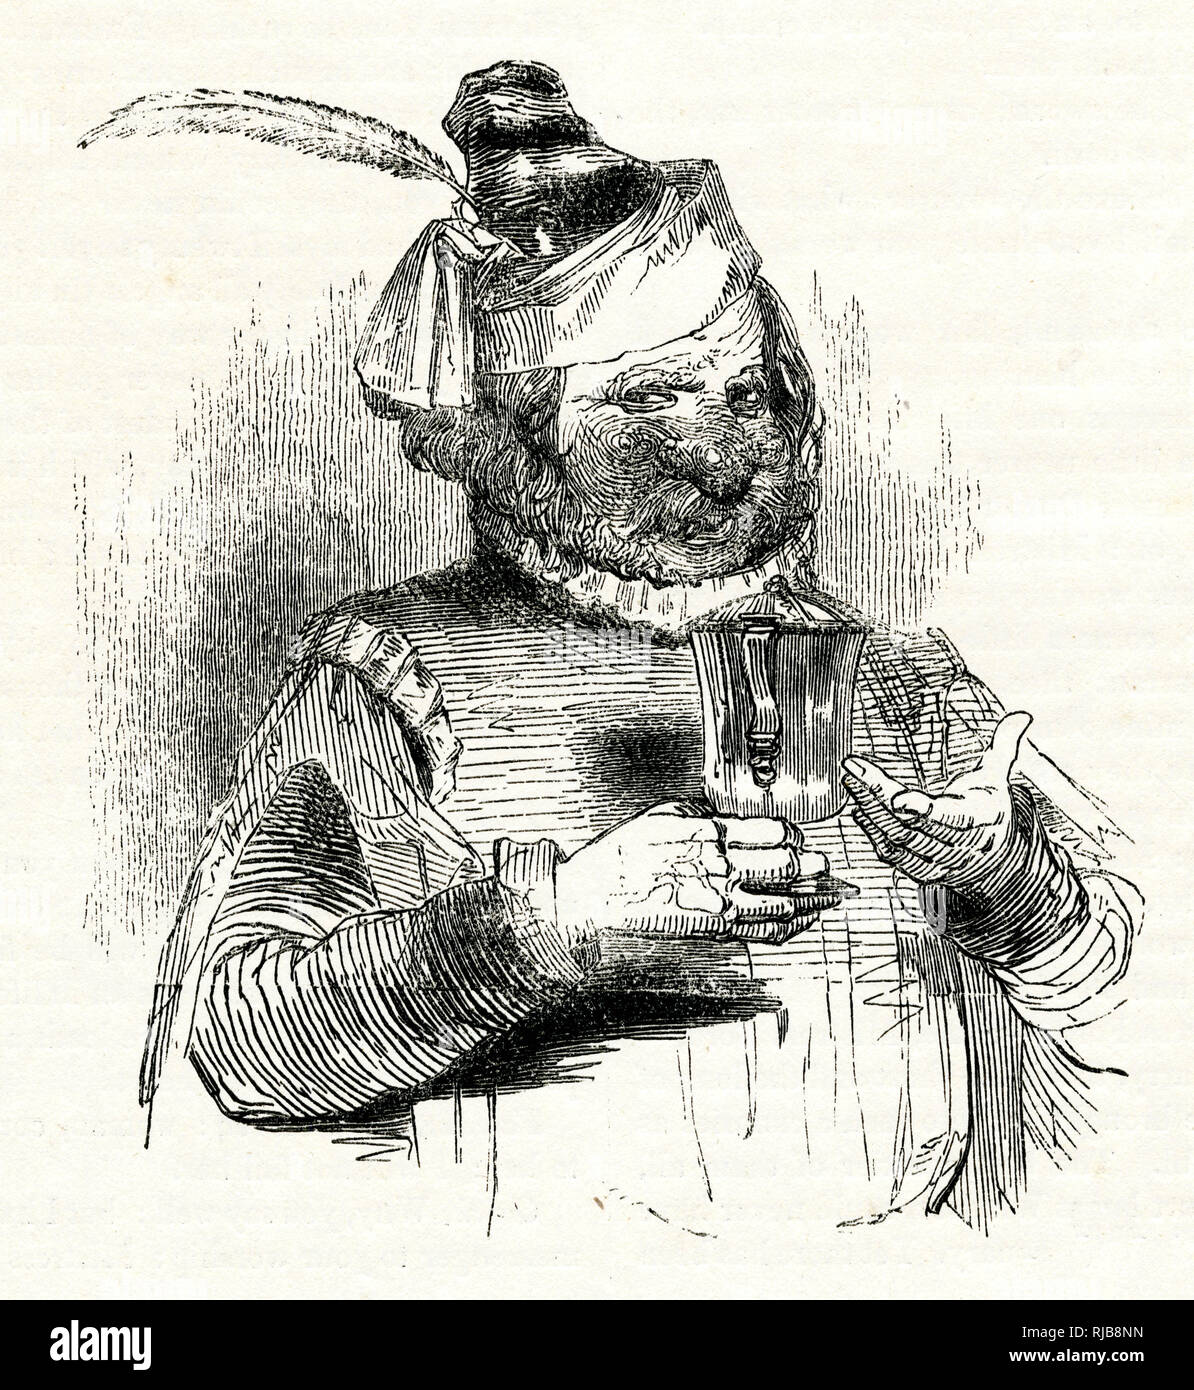 Illustration by Kenny Meadows to The Merry Wives of Windsor, by William Shakespeare. Portrait of Bardolph, one of Falstaff's friends, whose love of drinking has turned his face and nose very red. Stock Photo